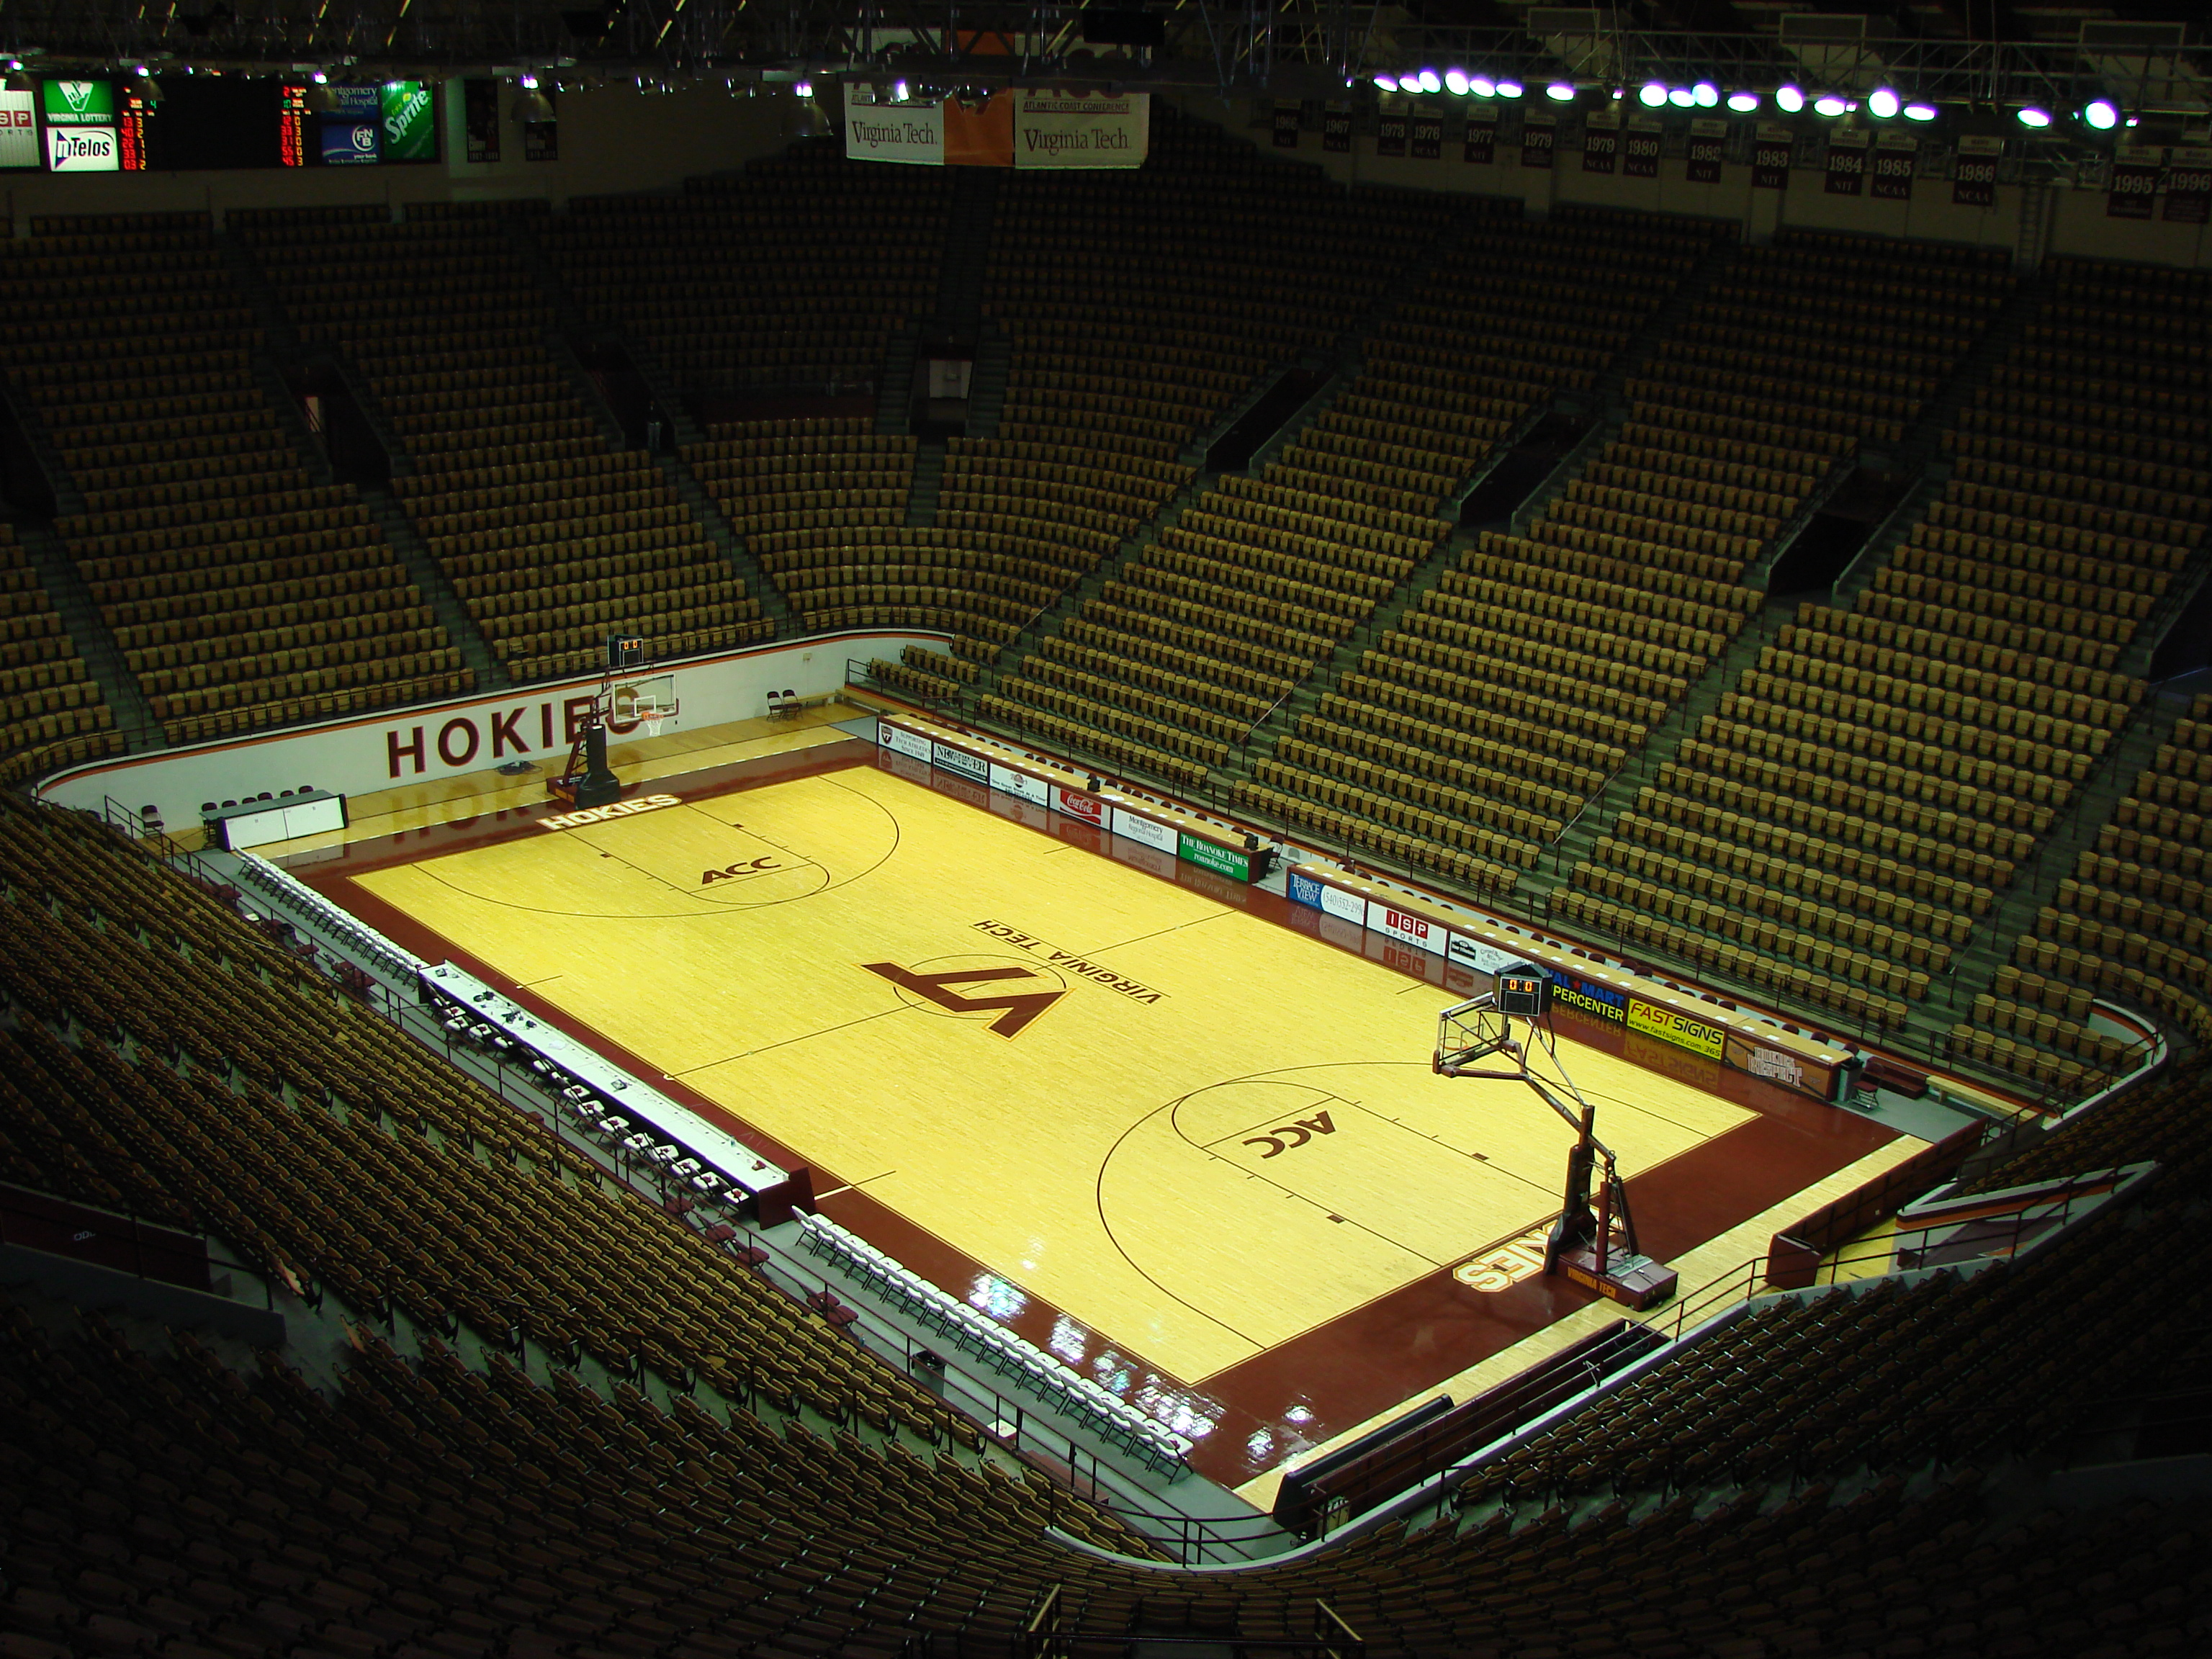 Cassell Coliseum (interior); image by Hokie4Heisman at English Wikipedia - Transferred from en.wikipedia to Commons., CC BY-SA 3.0, https://commons.wikimedia.org/w/index.php?curid=1753552